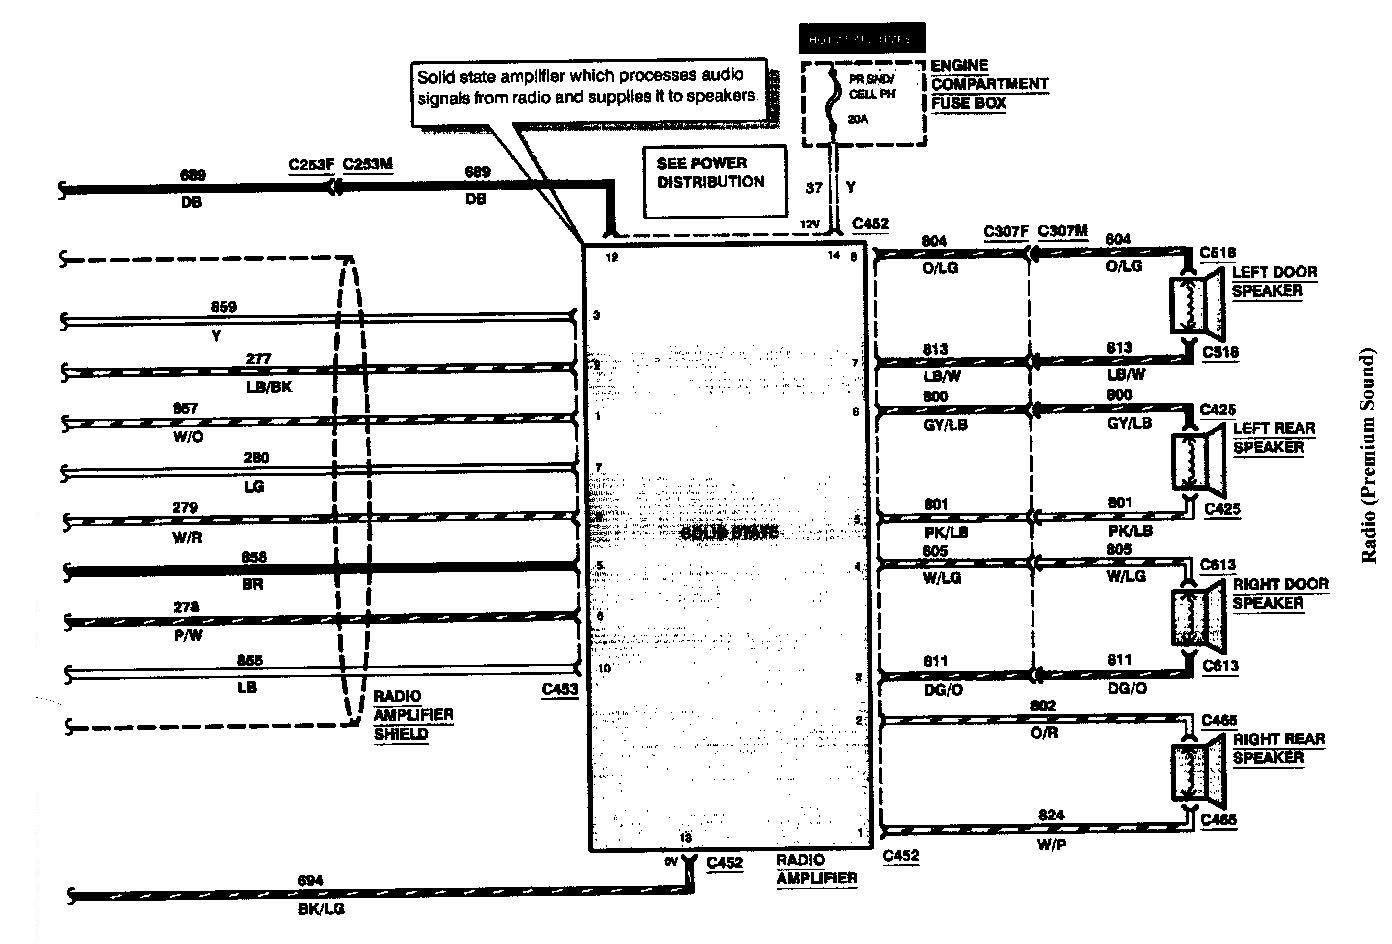 95Mark8 Premium Sound Wiring2 95 mark 8 jbl wiring diagram needed lincolns online message forum 1999 Lincoln Town Car Wiring Diagram at n-0.co